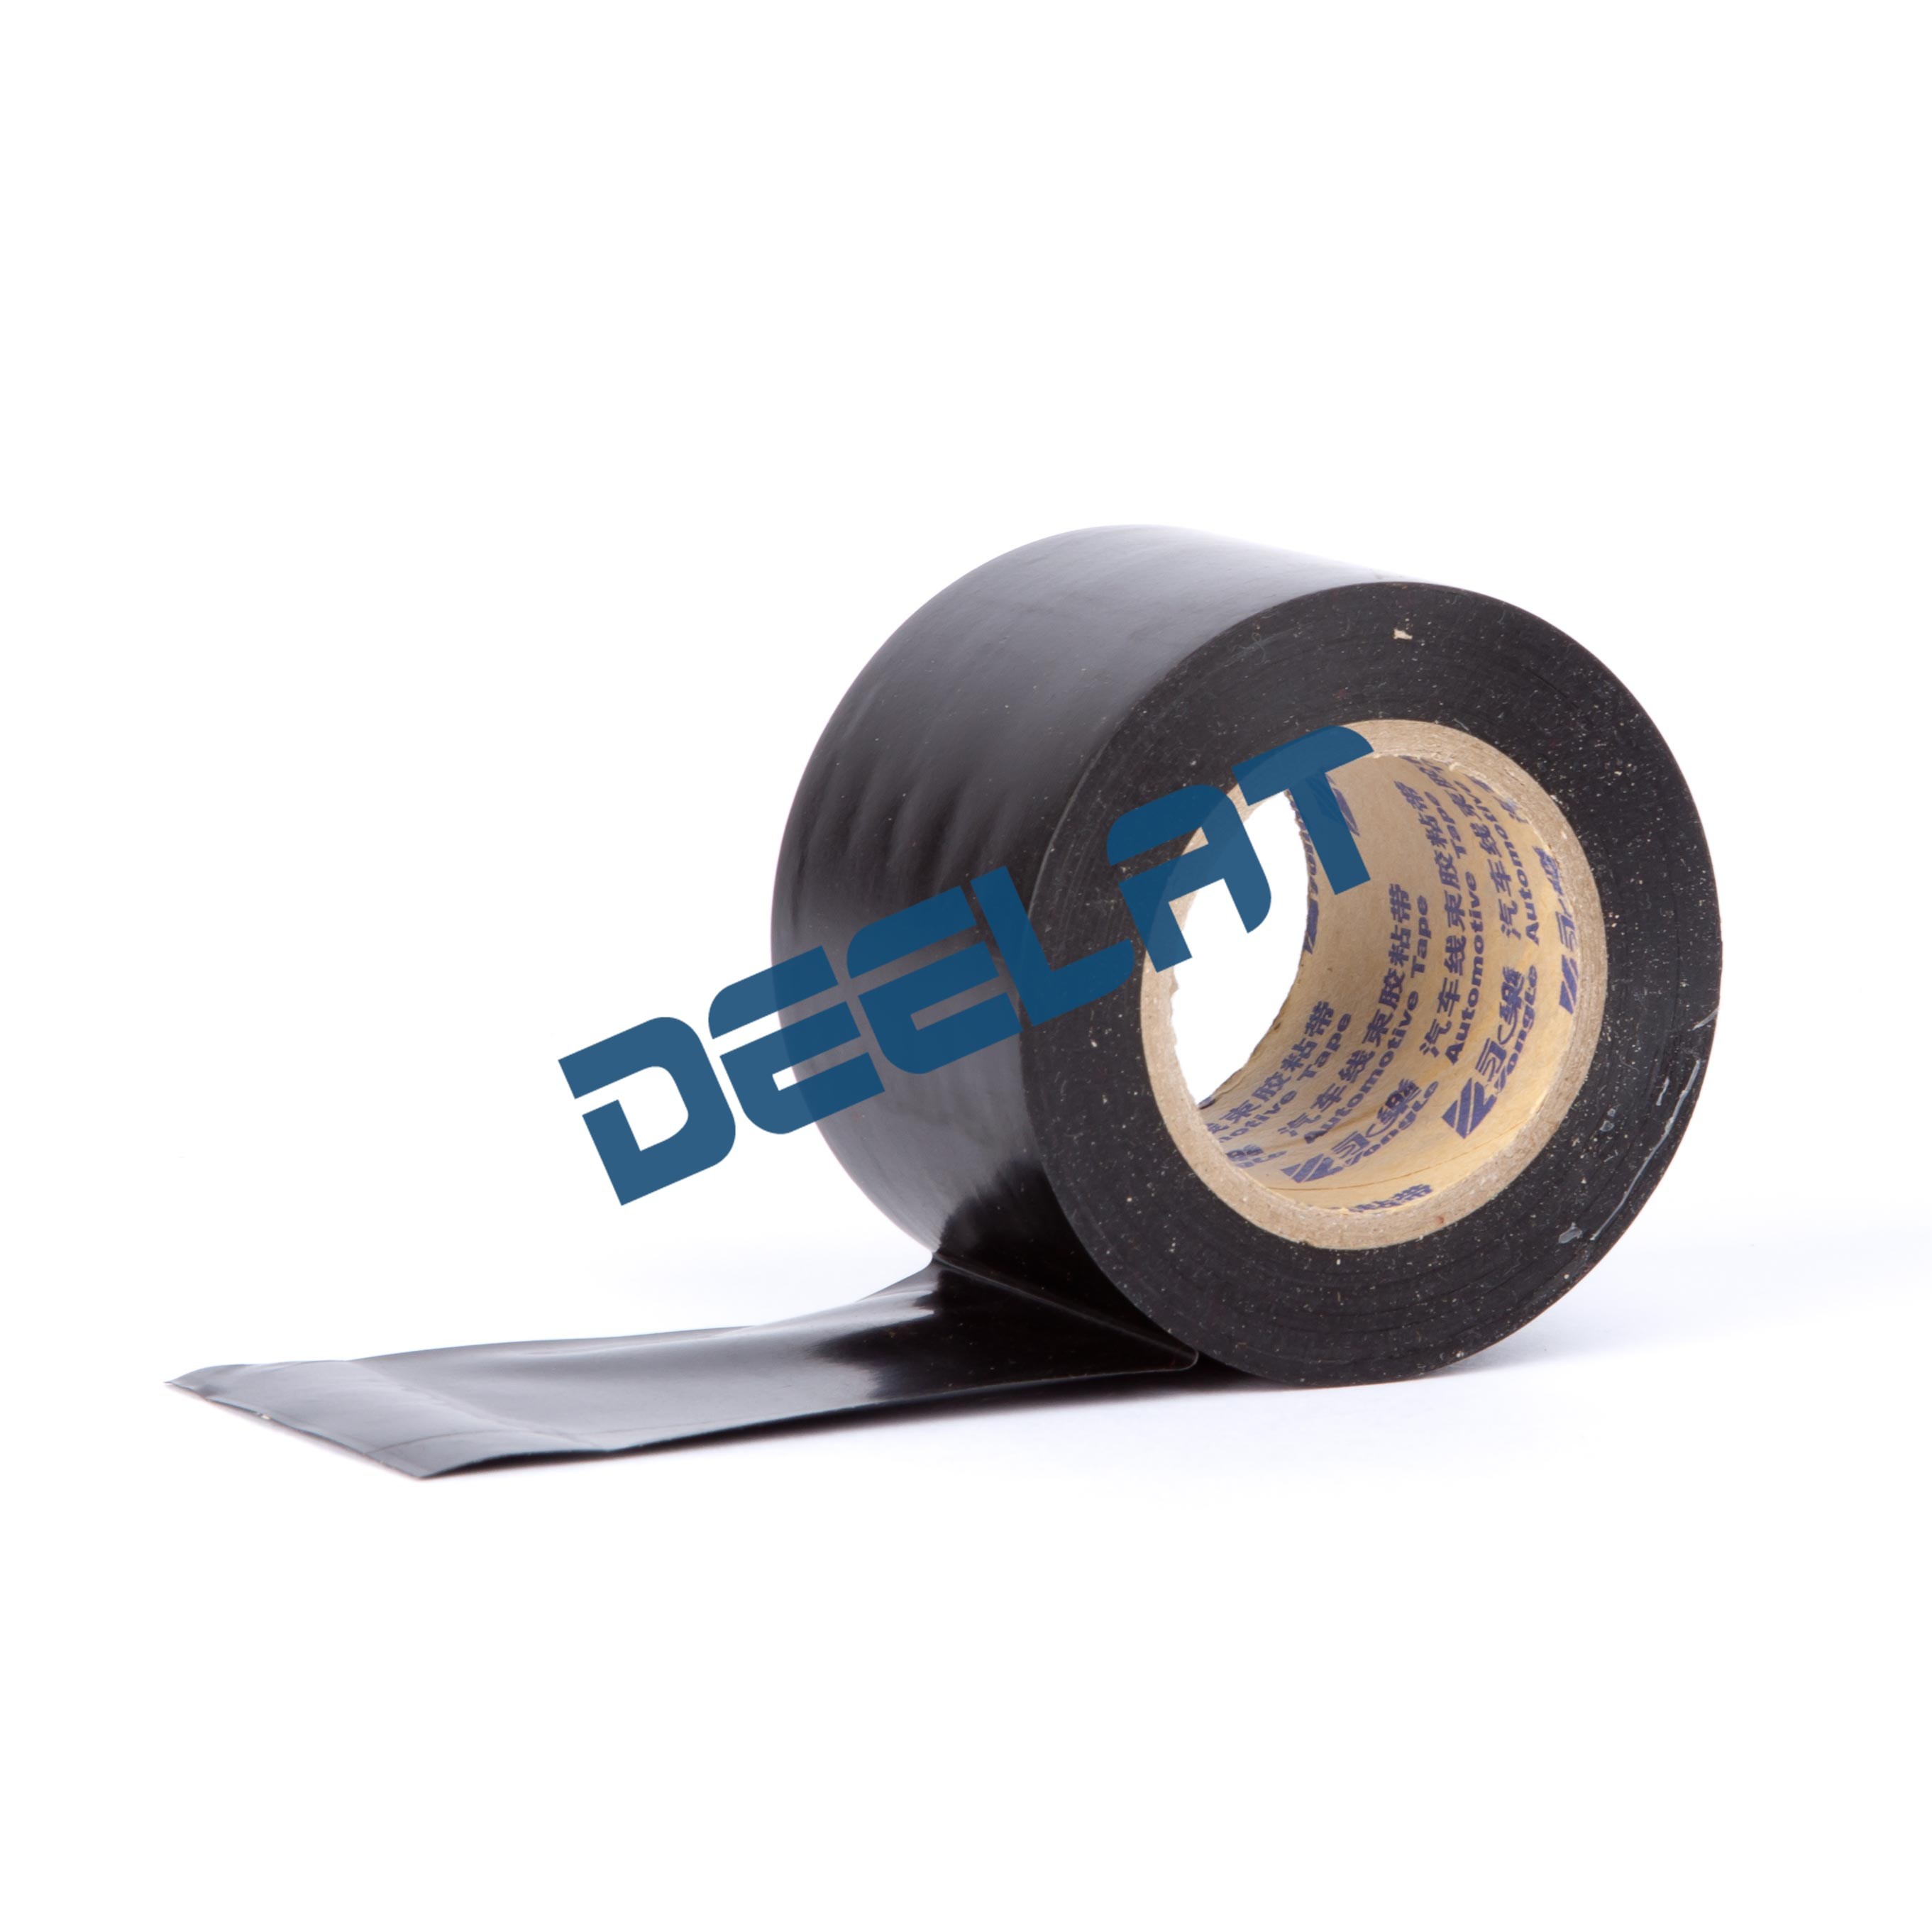 Auto IWre Harness Tape deelat blog automotive wire harness tape uses, types and auto wire harness tape at fashall.co